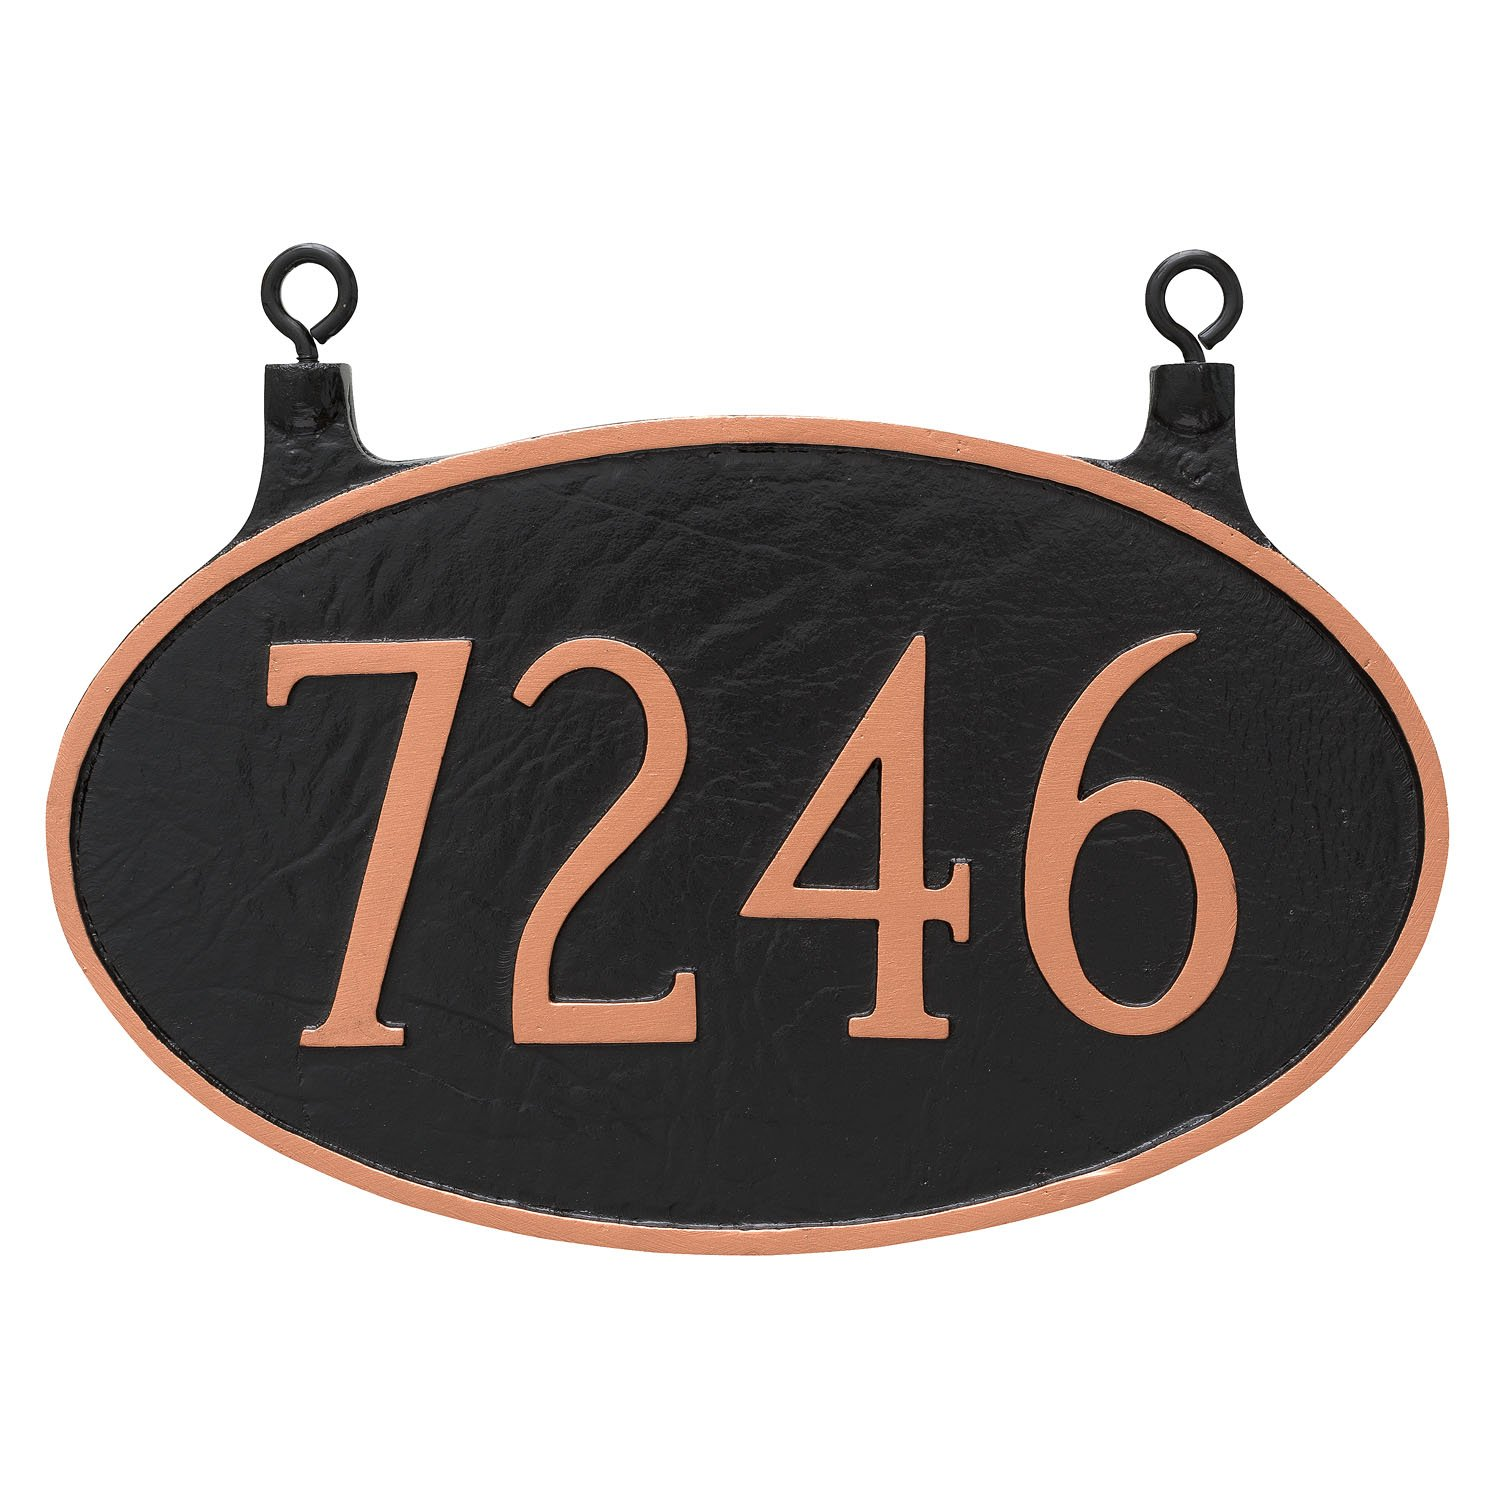 Montague Metal TSH-0001S1-H-BS 8.5' x 13.5' Double Sided Hanging Classic Oval Address Sign Plaque, Standard, Black/Silver